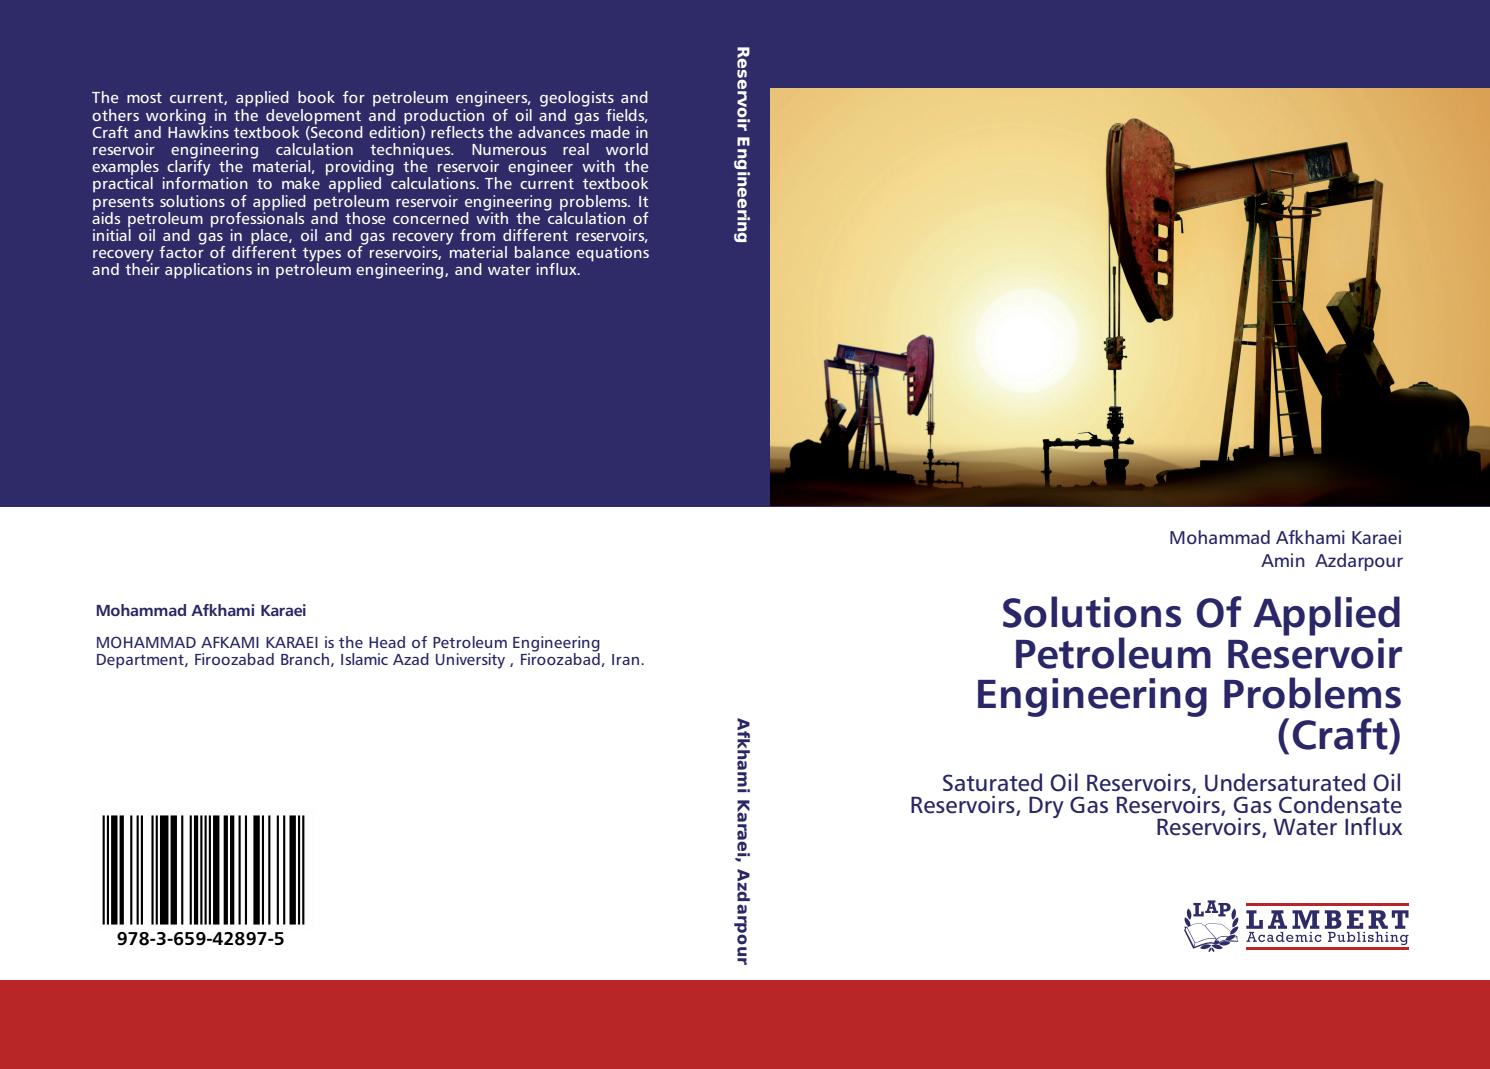 solution manual for applied petroleum reservoir engineering by craft